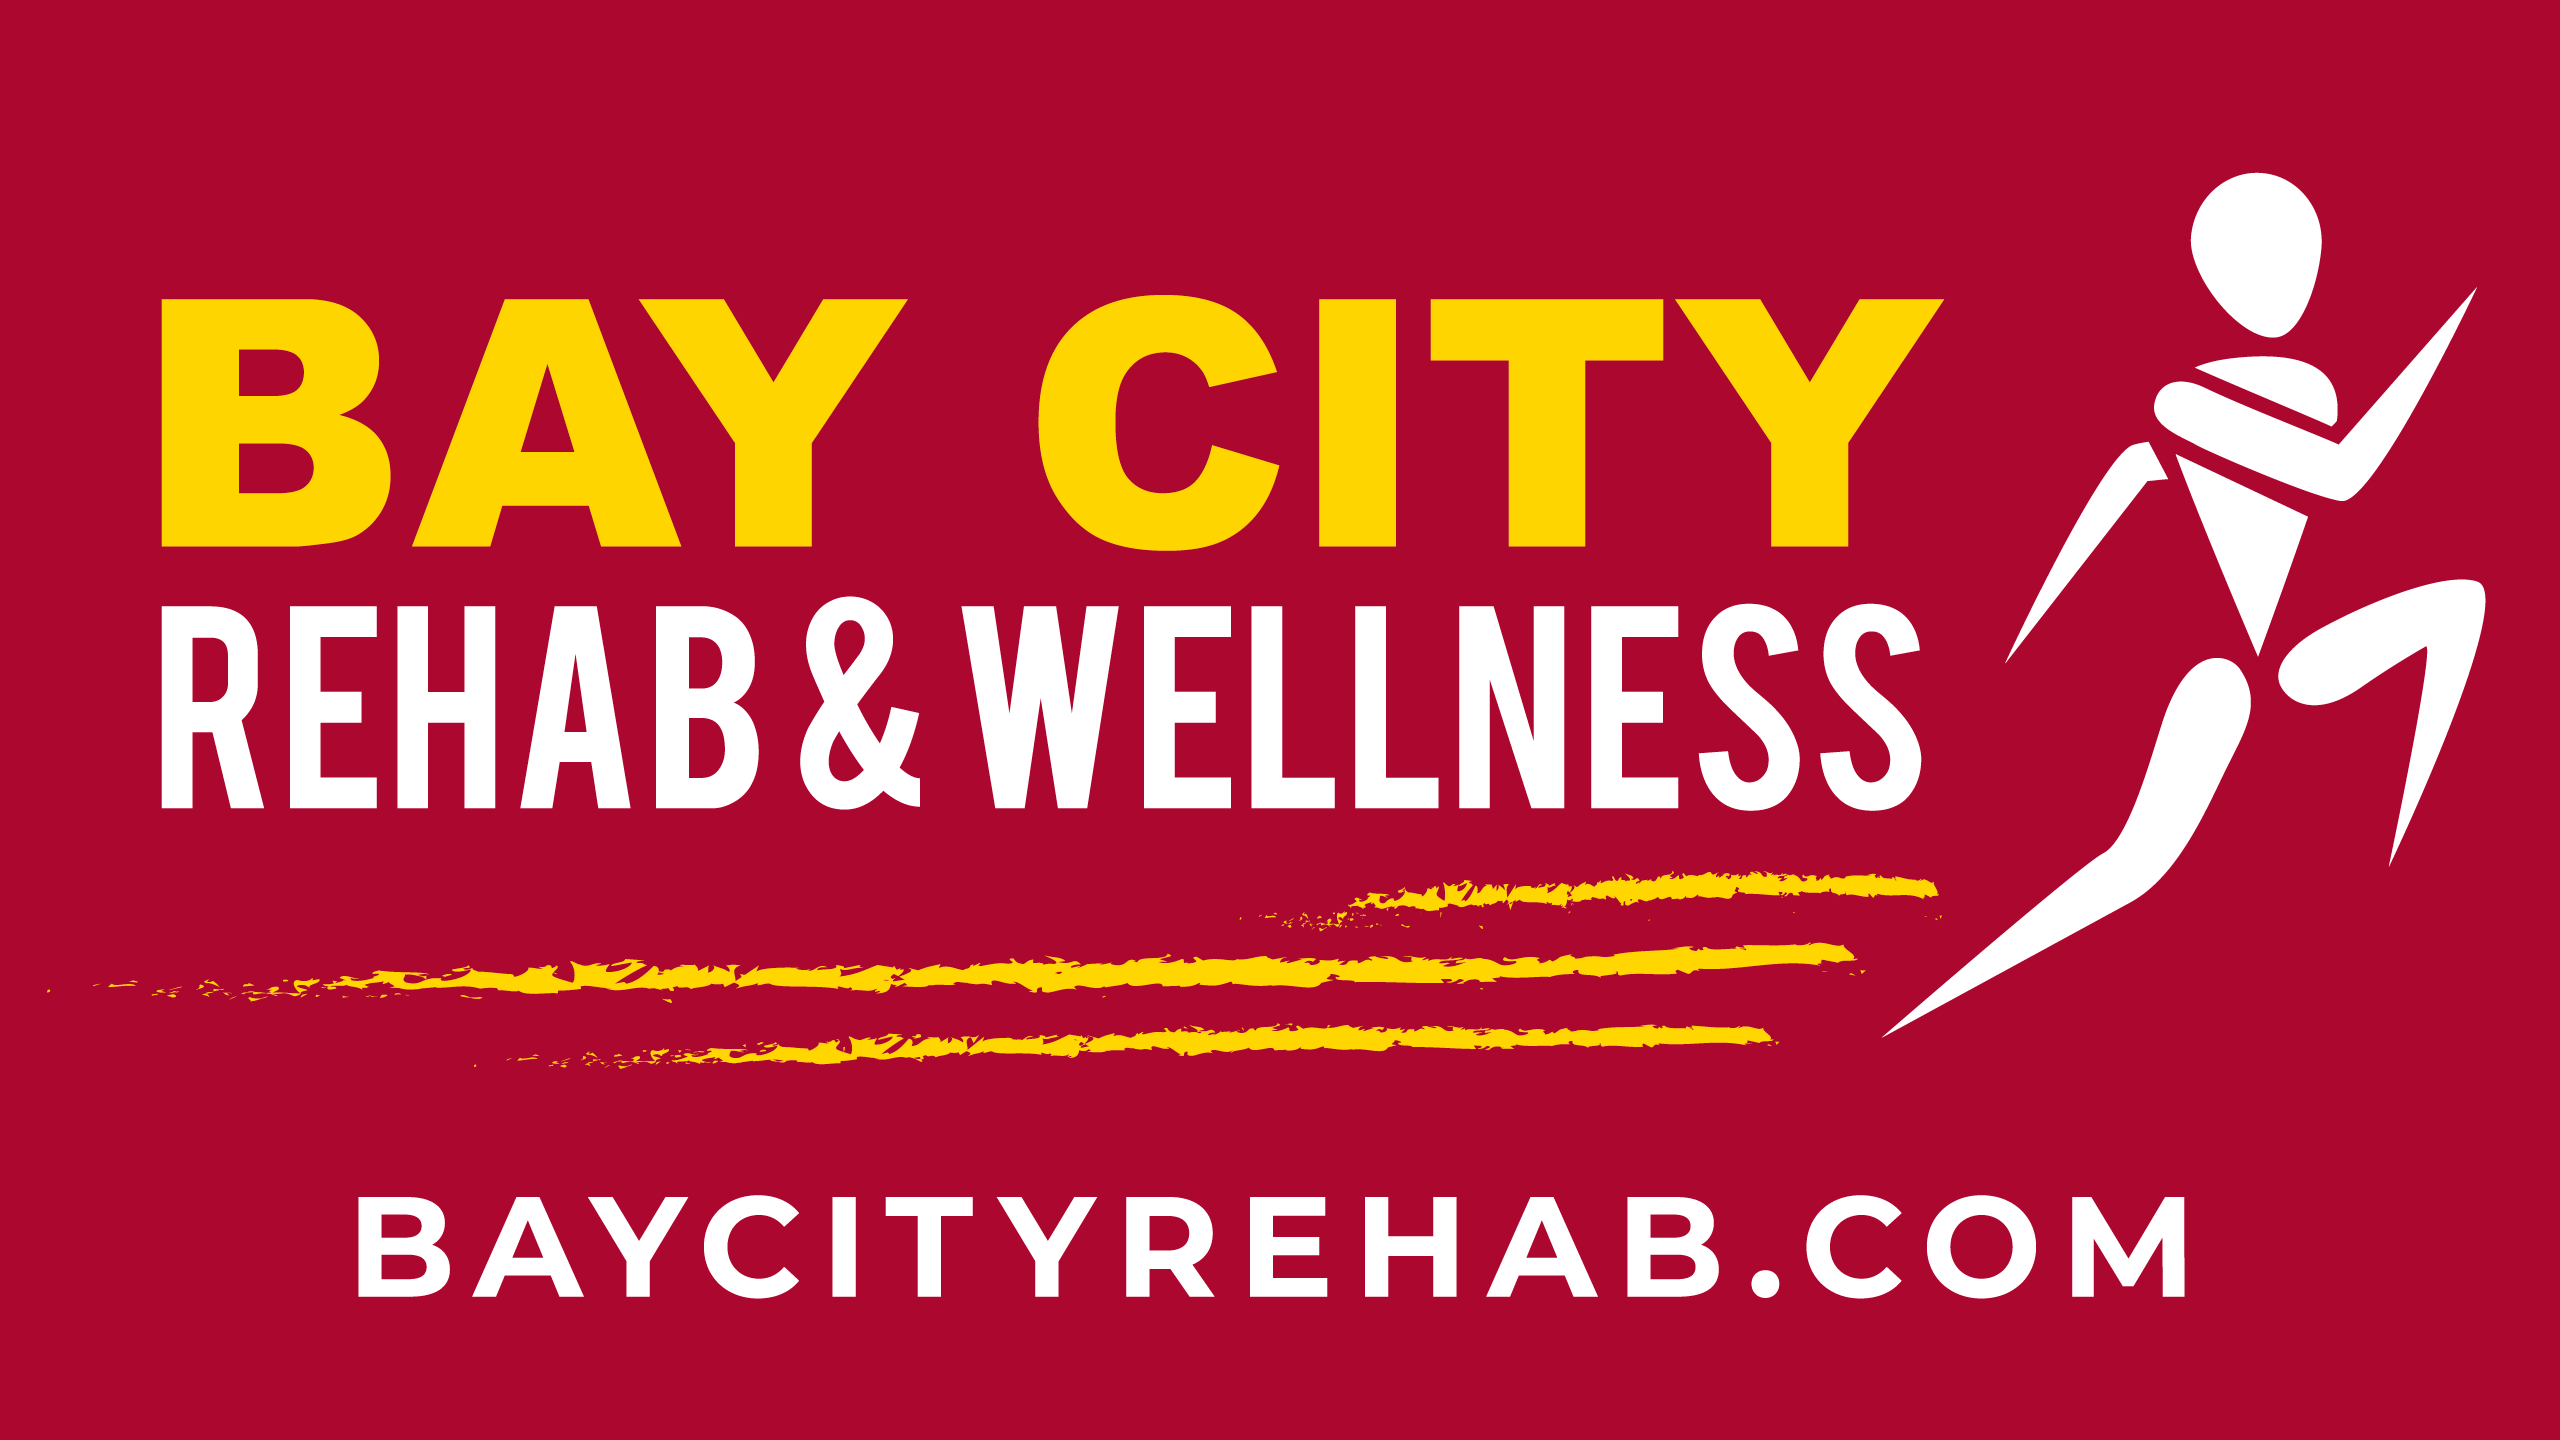 Bay City Rehab & Wellness